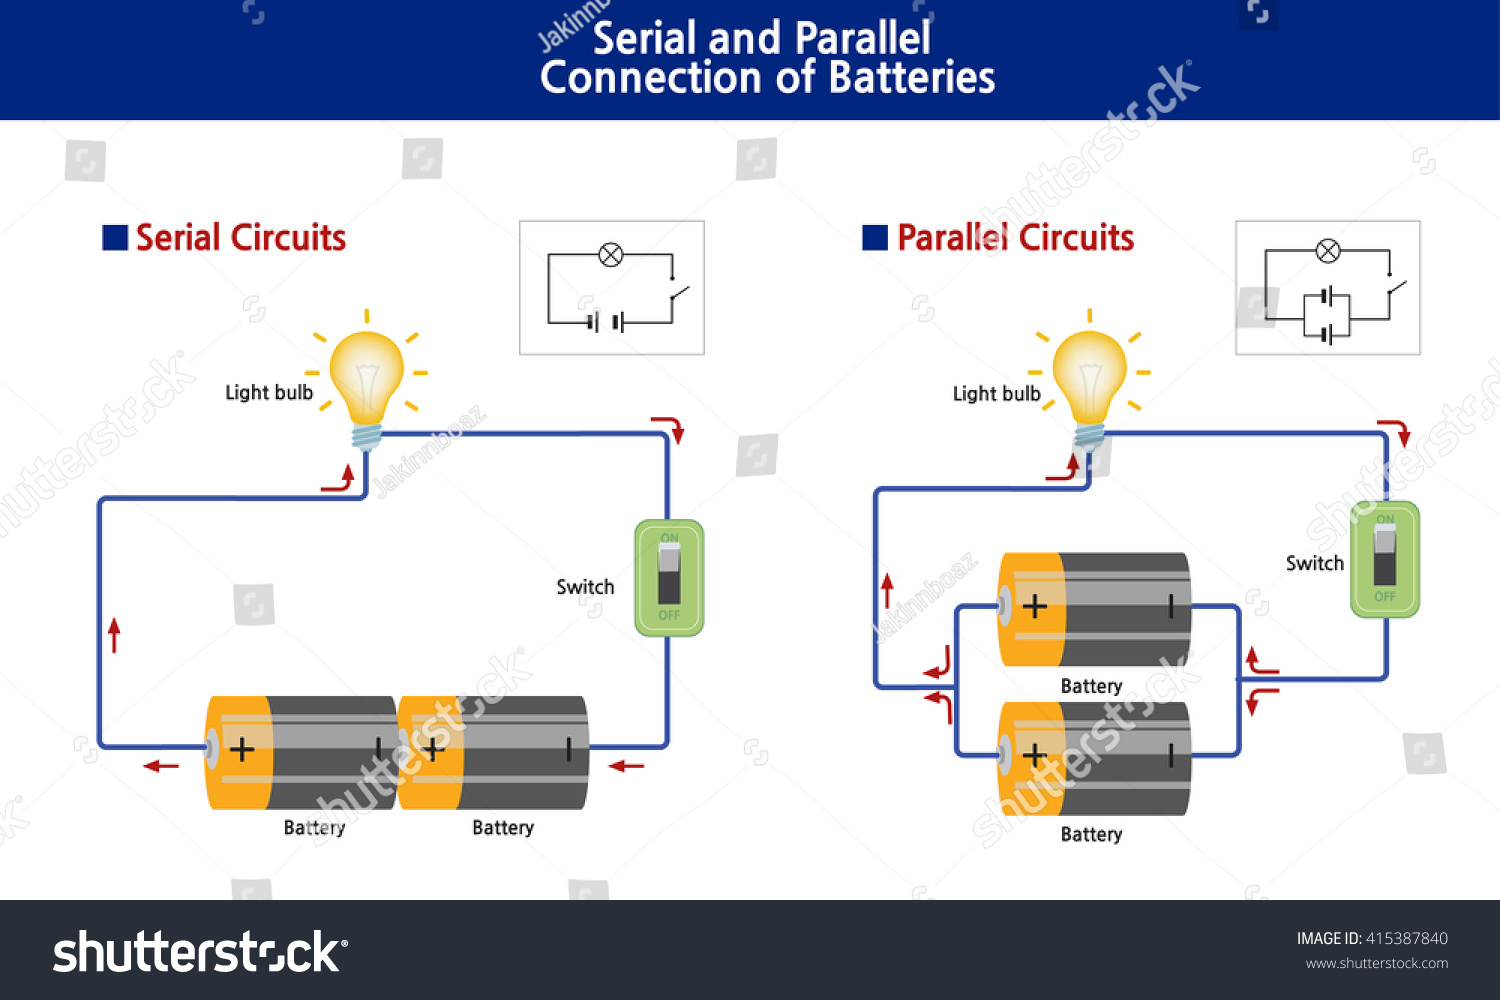 Shows Diagram Serial Parallel Batteries Showing Stock Vector Lights In Wiring The Of And Wires Light Bulbs